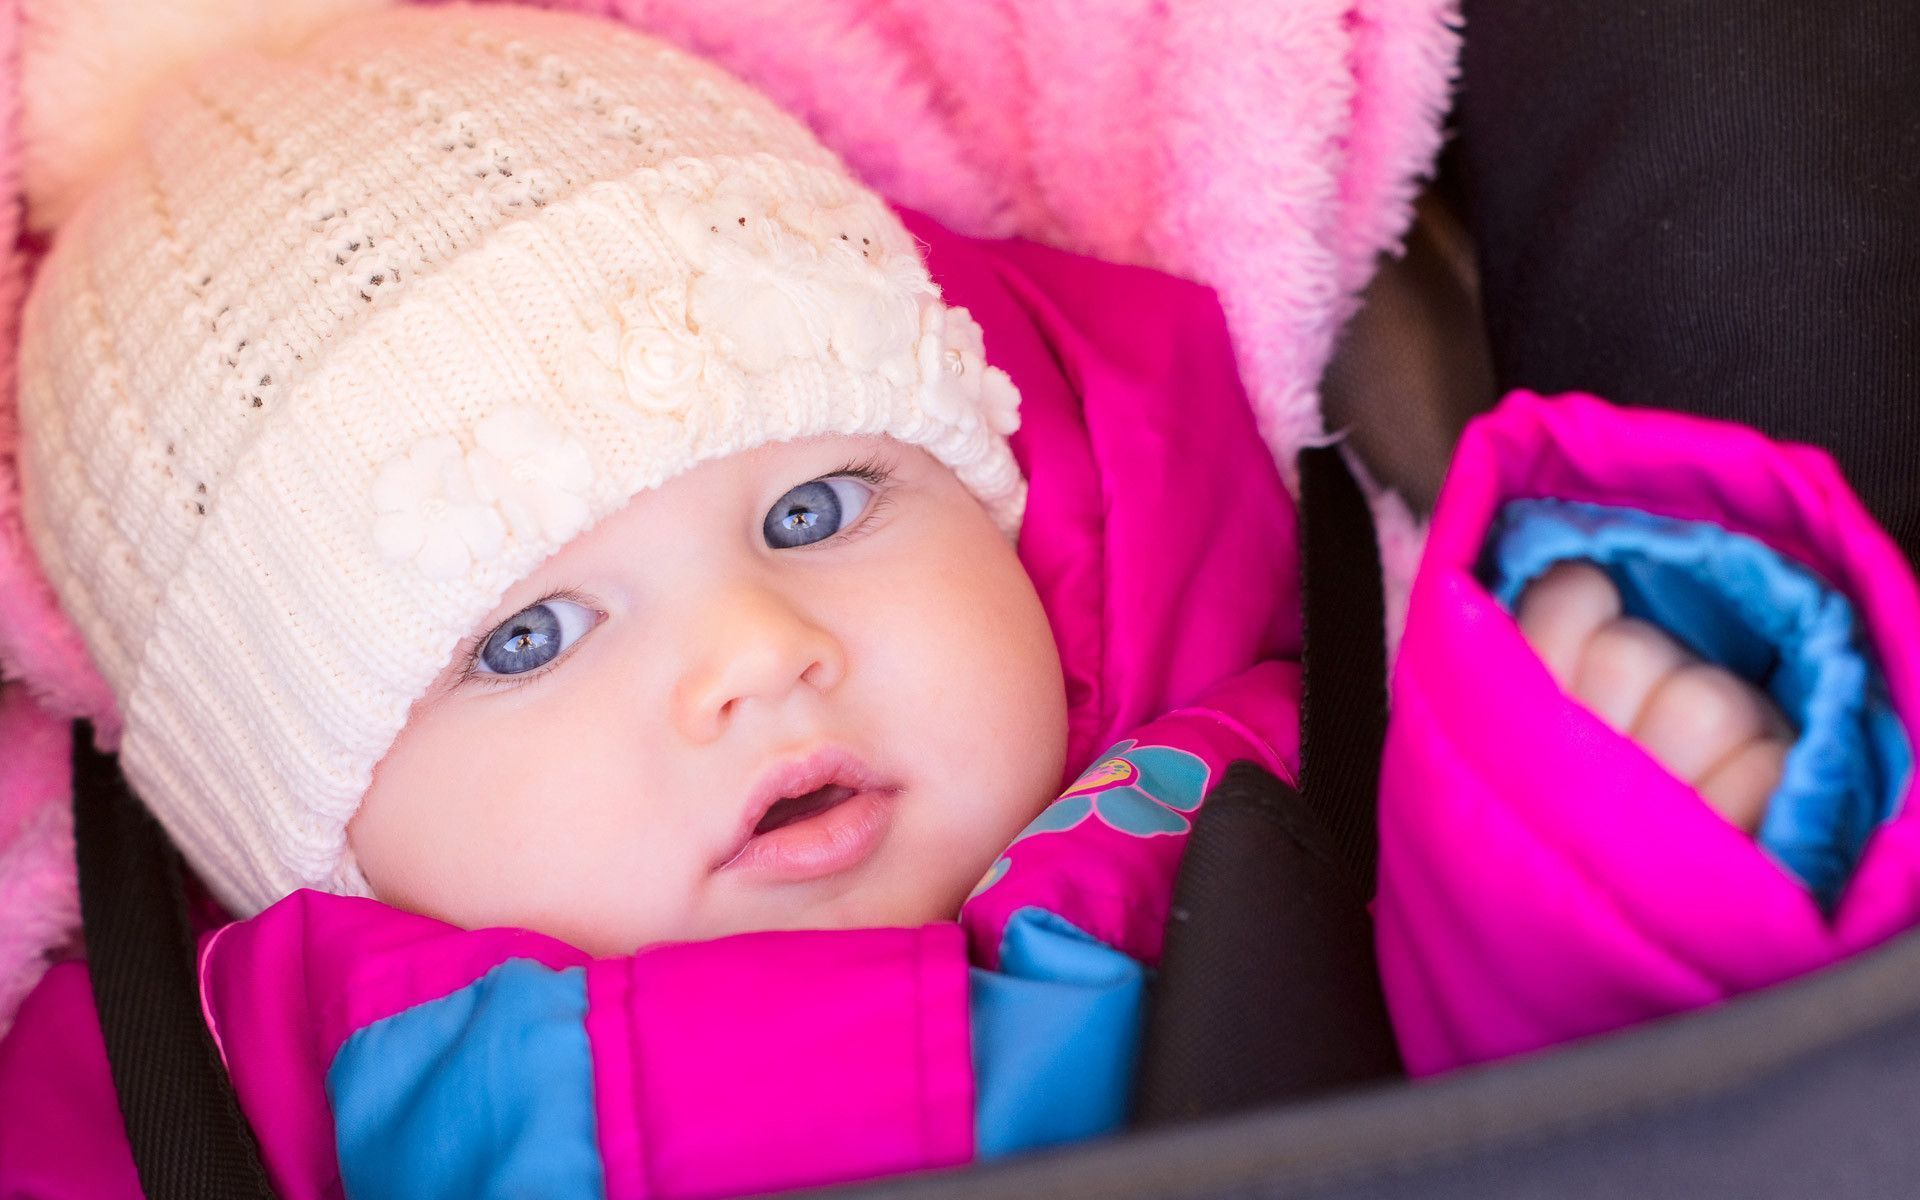 Hd Baby Wallpaper Cute Baby Wallpaper Baby Posters Cute Baby Pictures